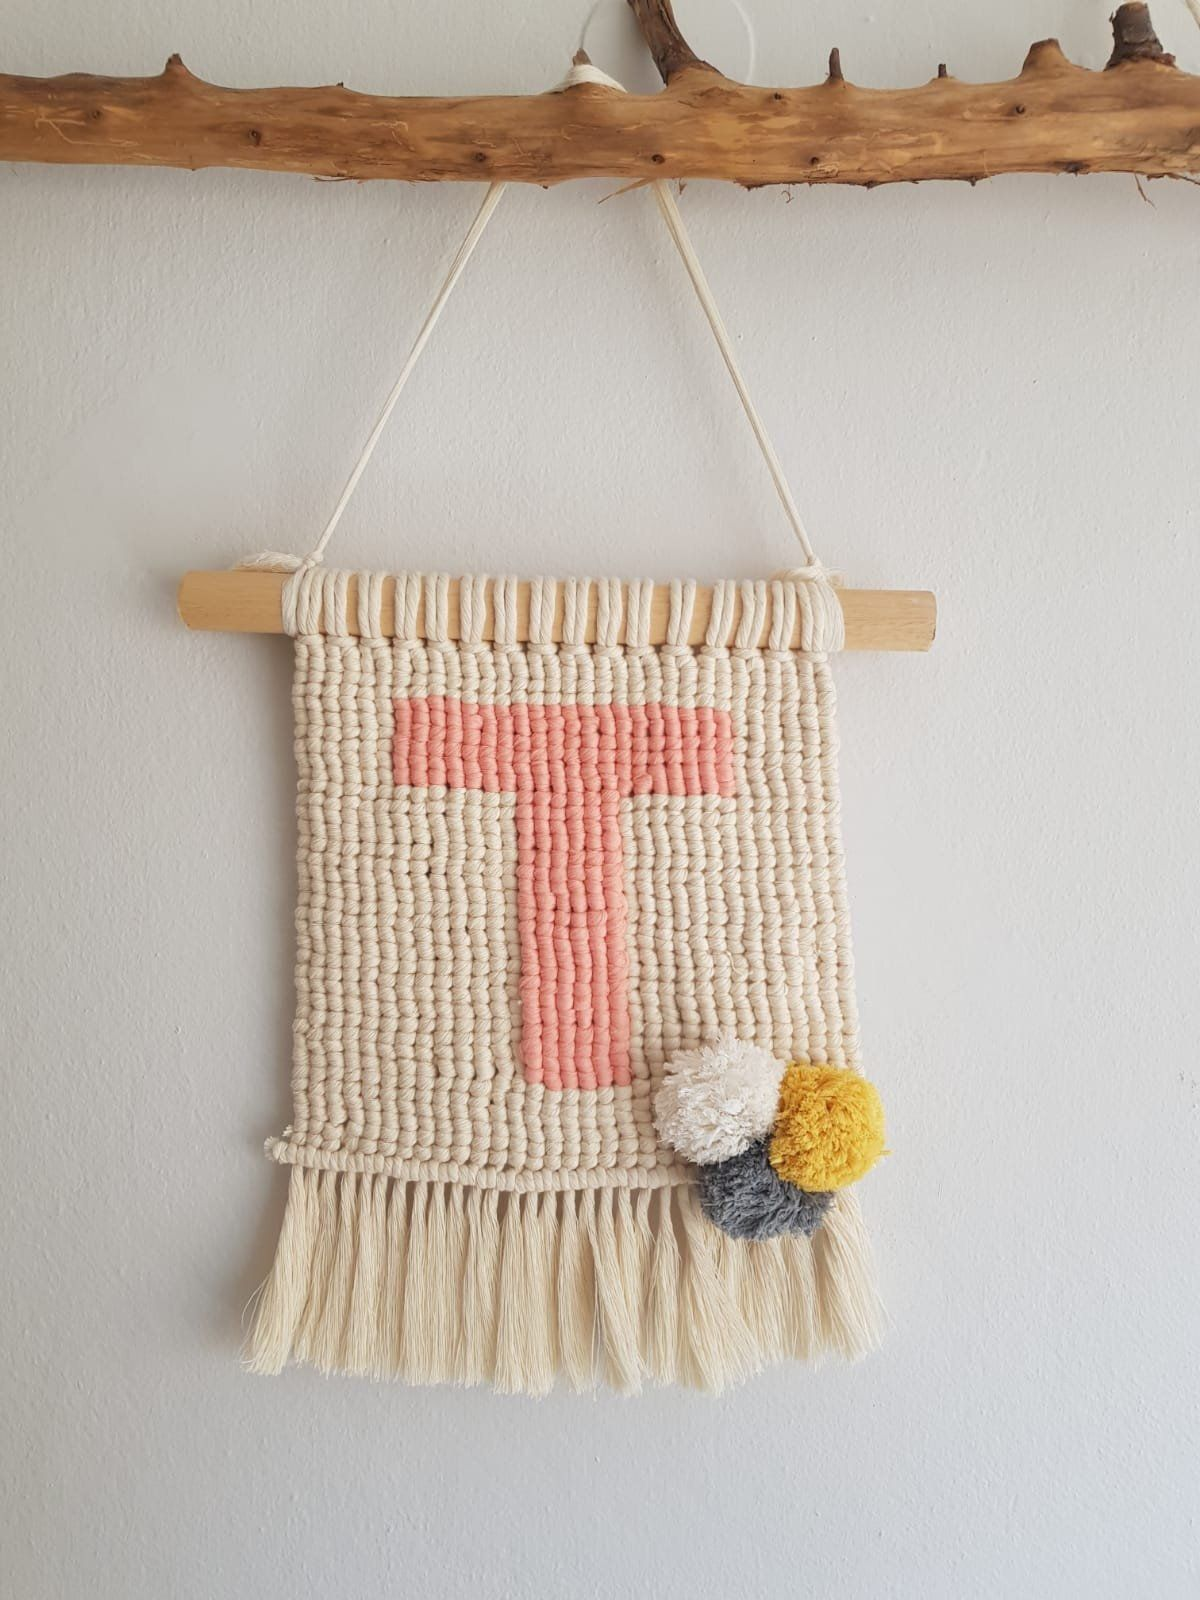 Pompom Macrame Wall Hanging With Letter T By Comunico On Etsy